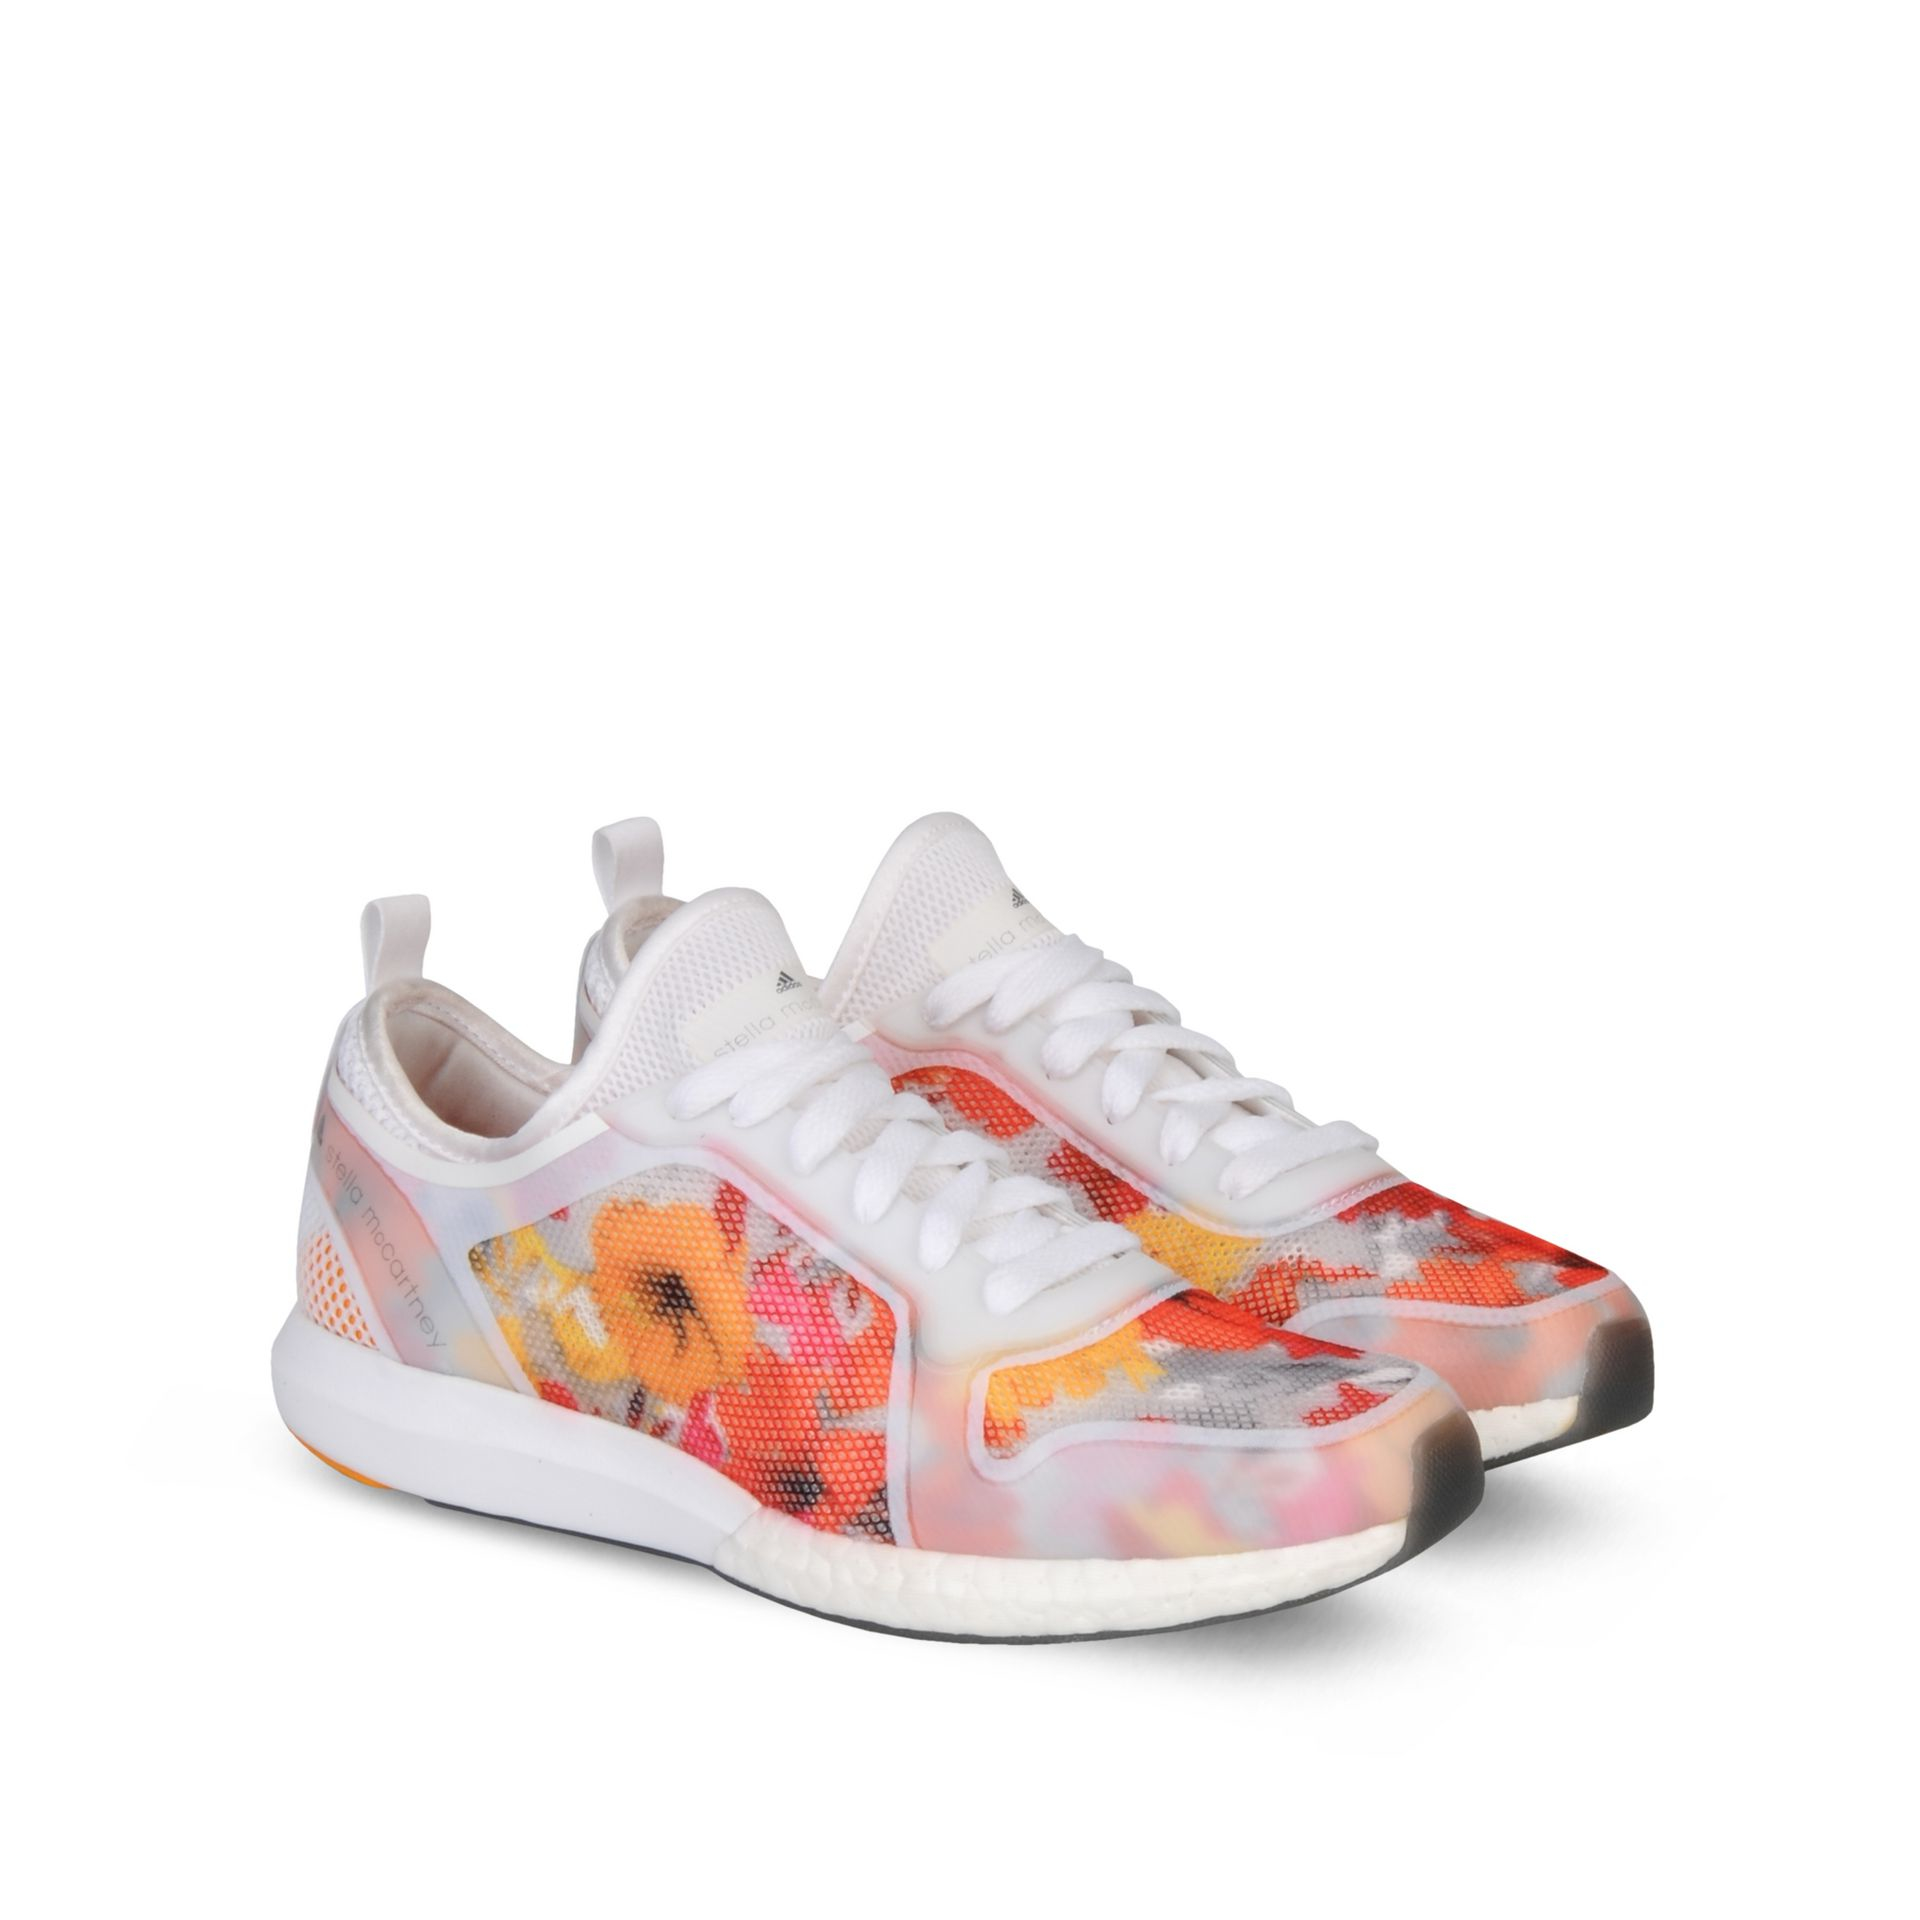 new arrival 000ac 91c41 Lyst - adidas By Stella McCartney Cc Sonic Running Shoes in